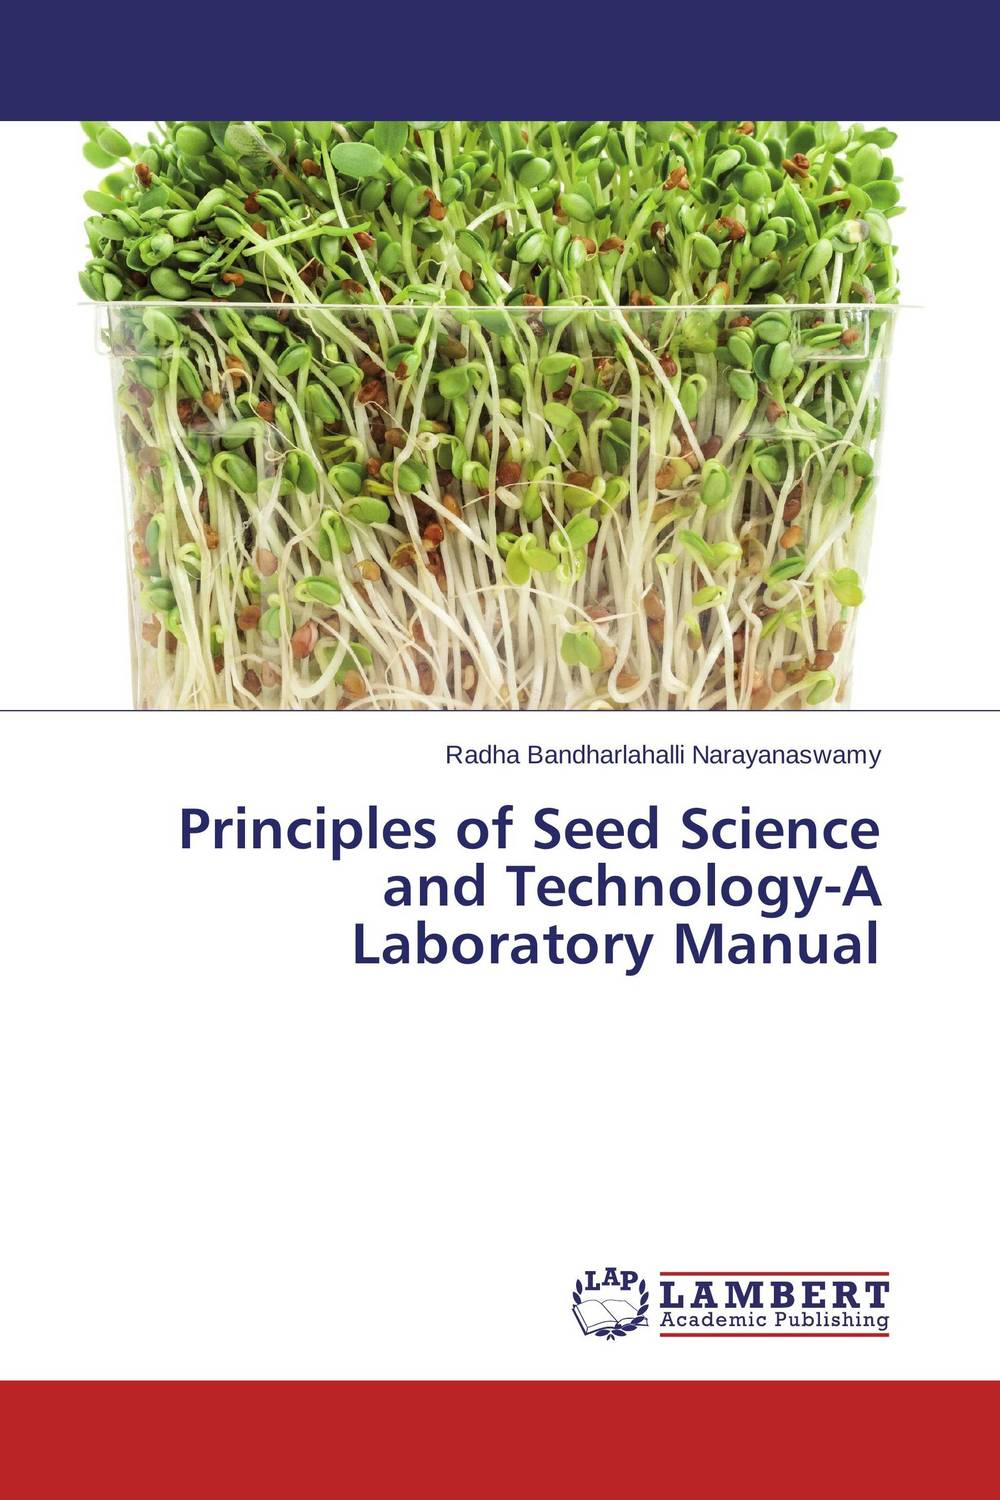 Principles of Seed Science and Technology-A Laboratory Manual seed dormancy and germination